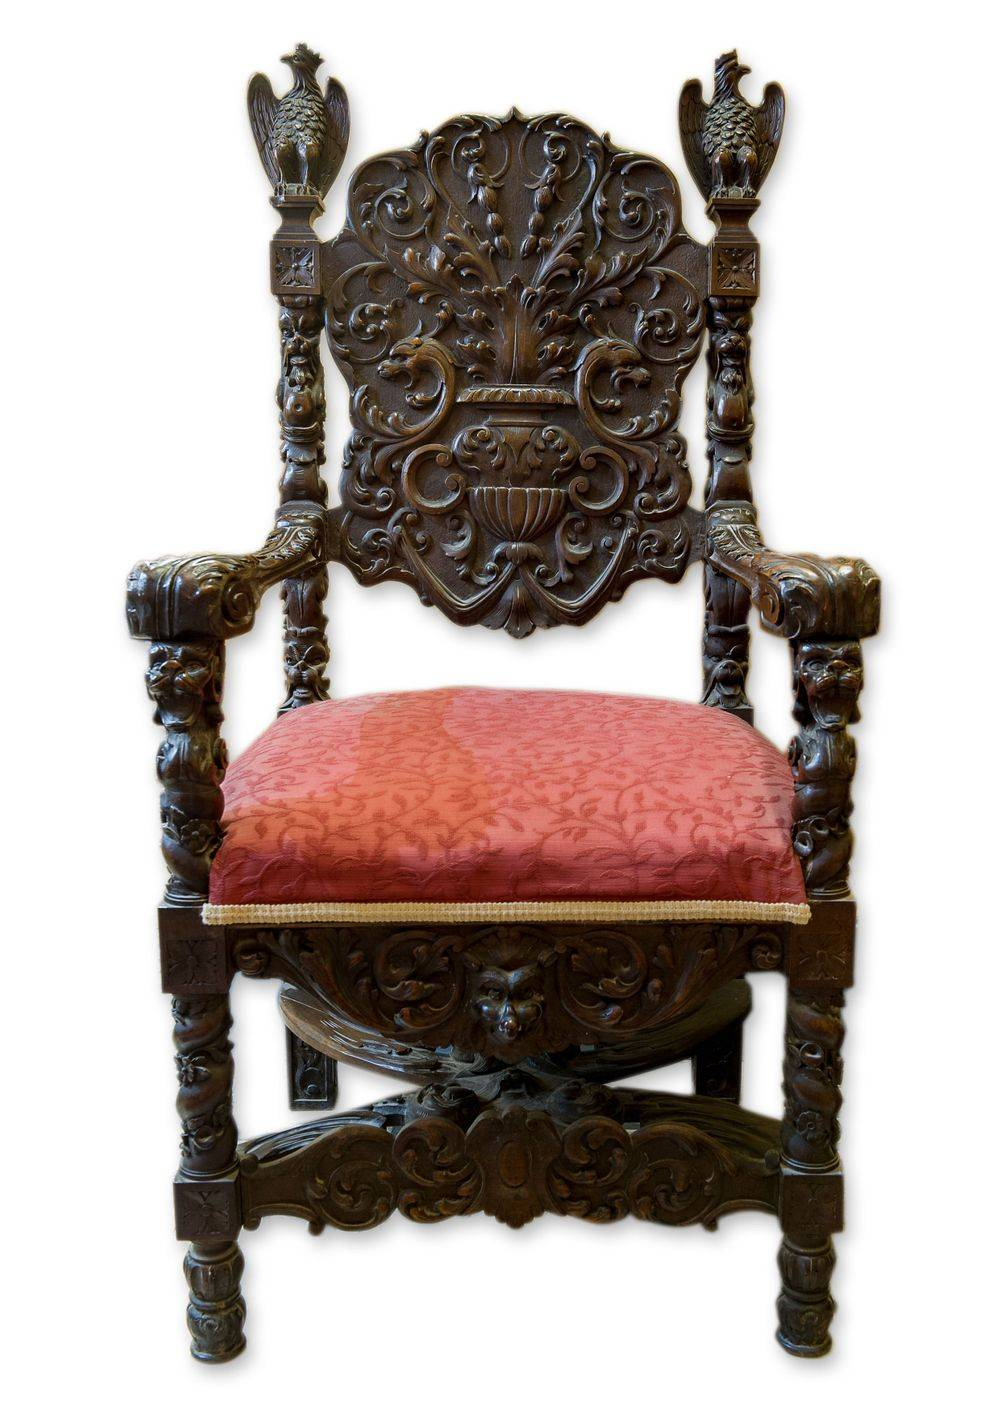 19th Century florentine Chair